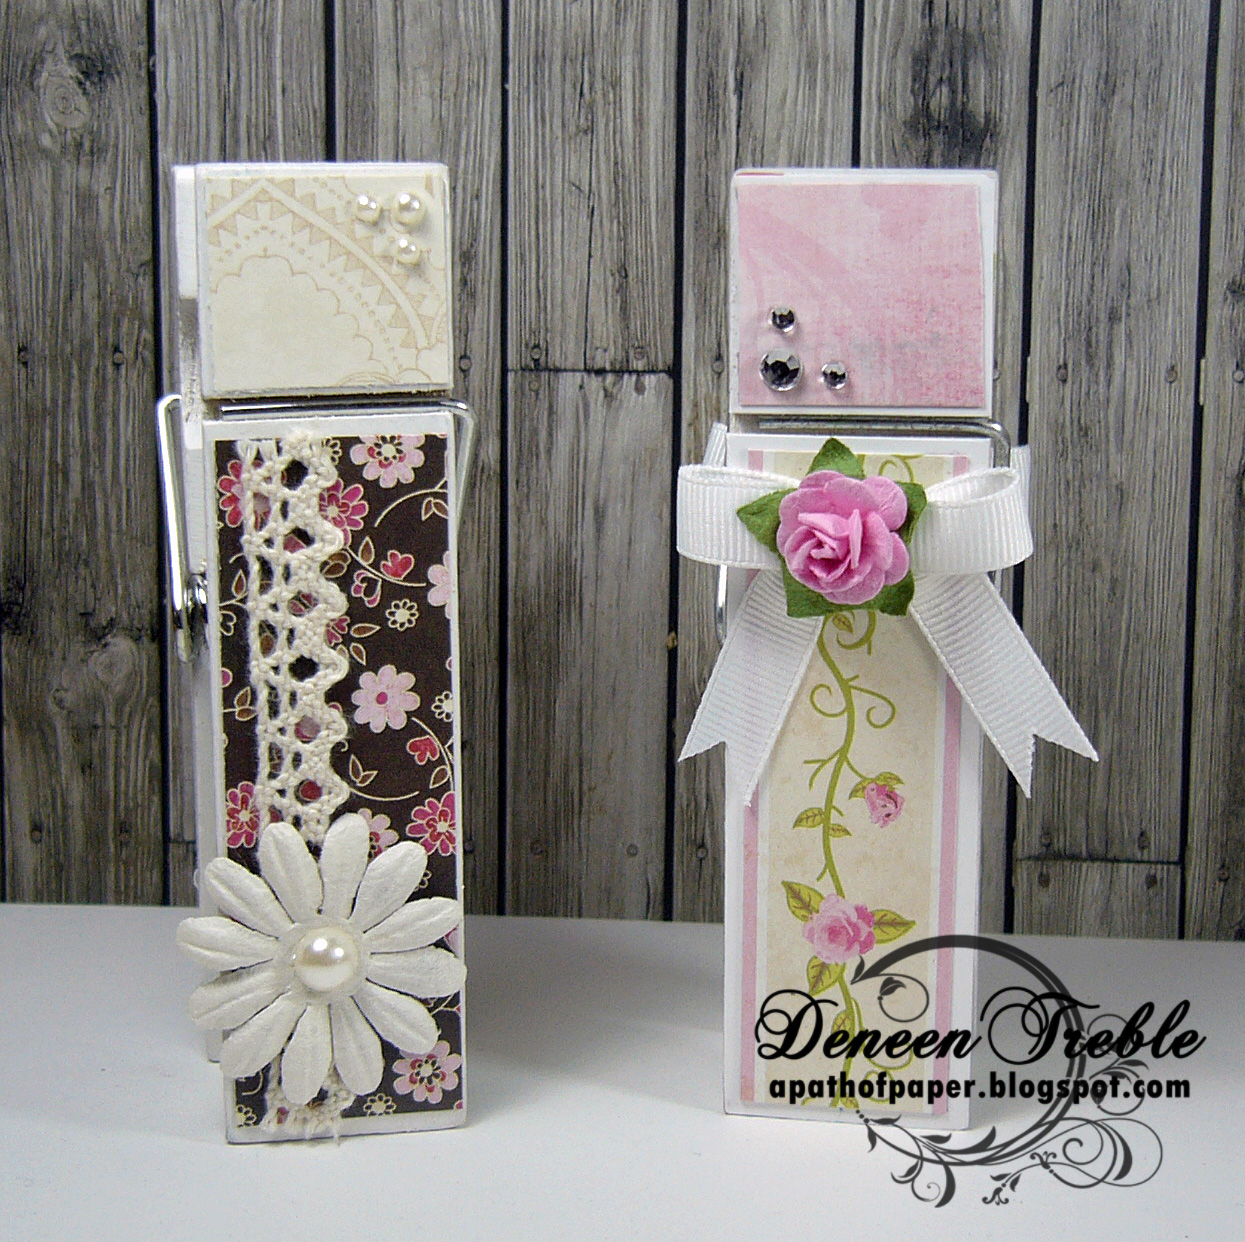 A path of paper craft show binder clips for Mini clothespin craft ideas